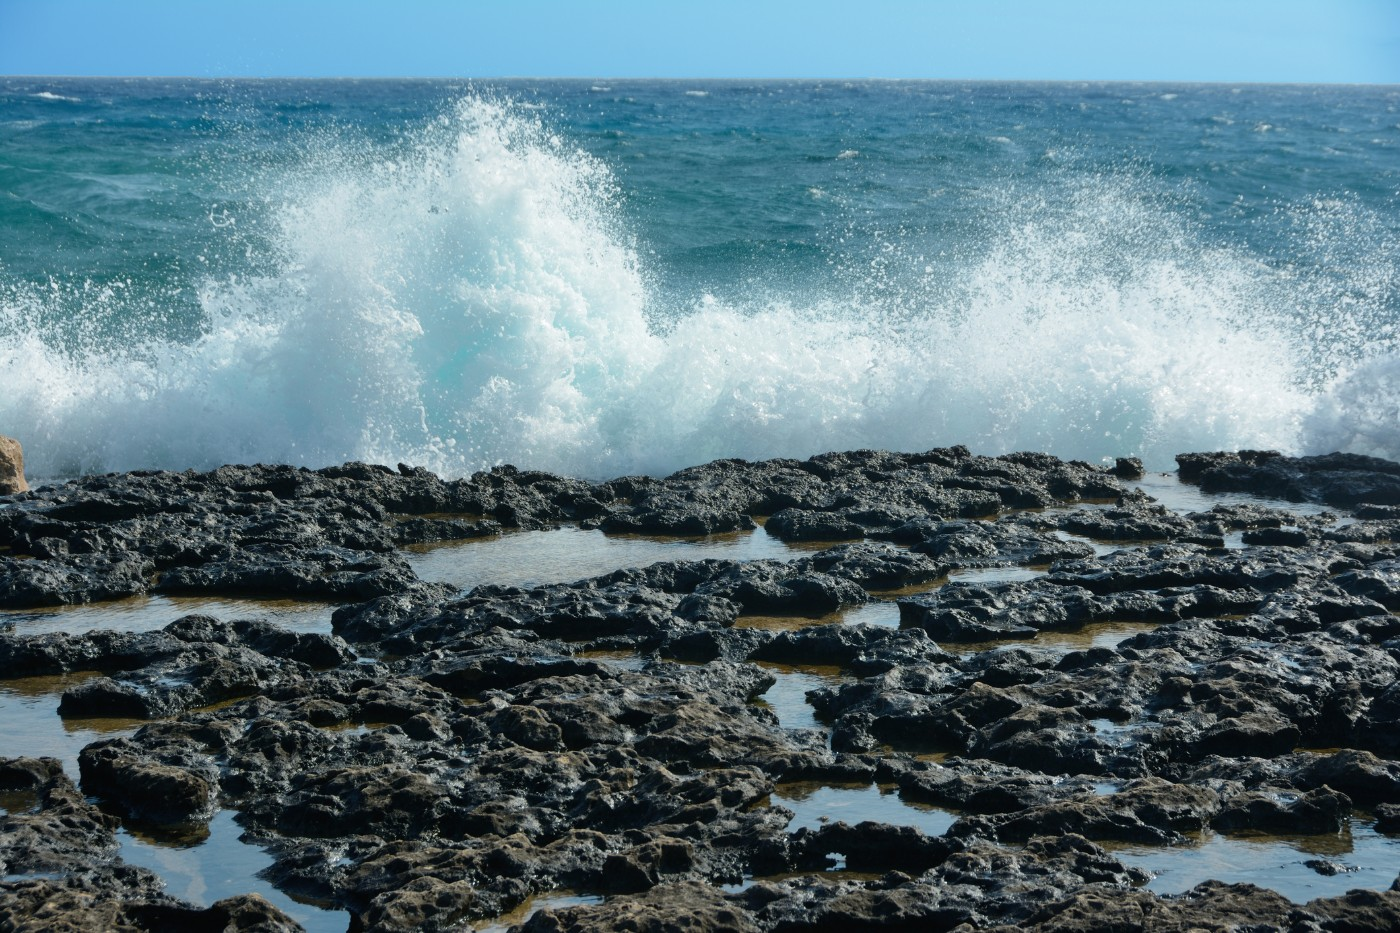 https://tickertapecdn.tdameritrade.com/assets/images/pages/md/Waves crashing: Inflation can erode cash, but investors may need liquid capital to seize opportunities